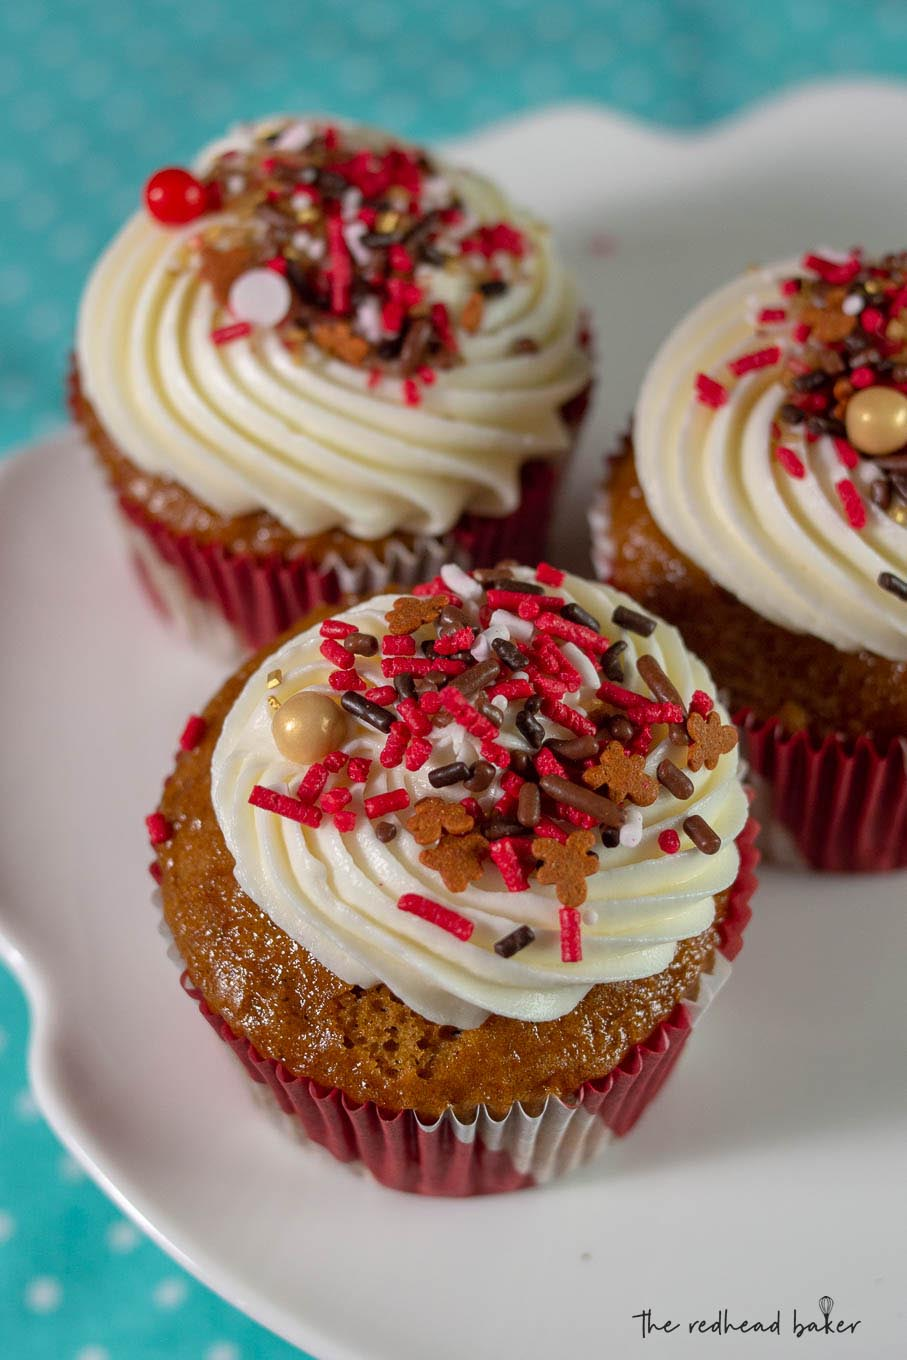 Three gingerbread cupcakes on a white cake stand